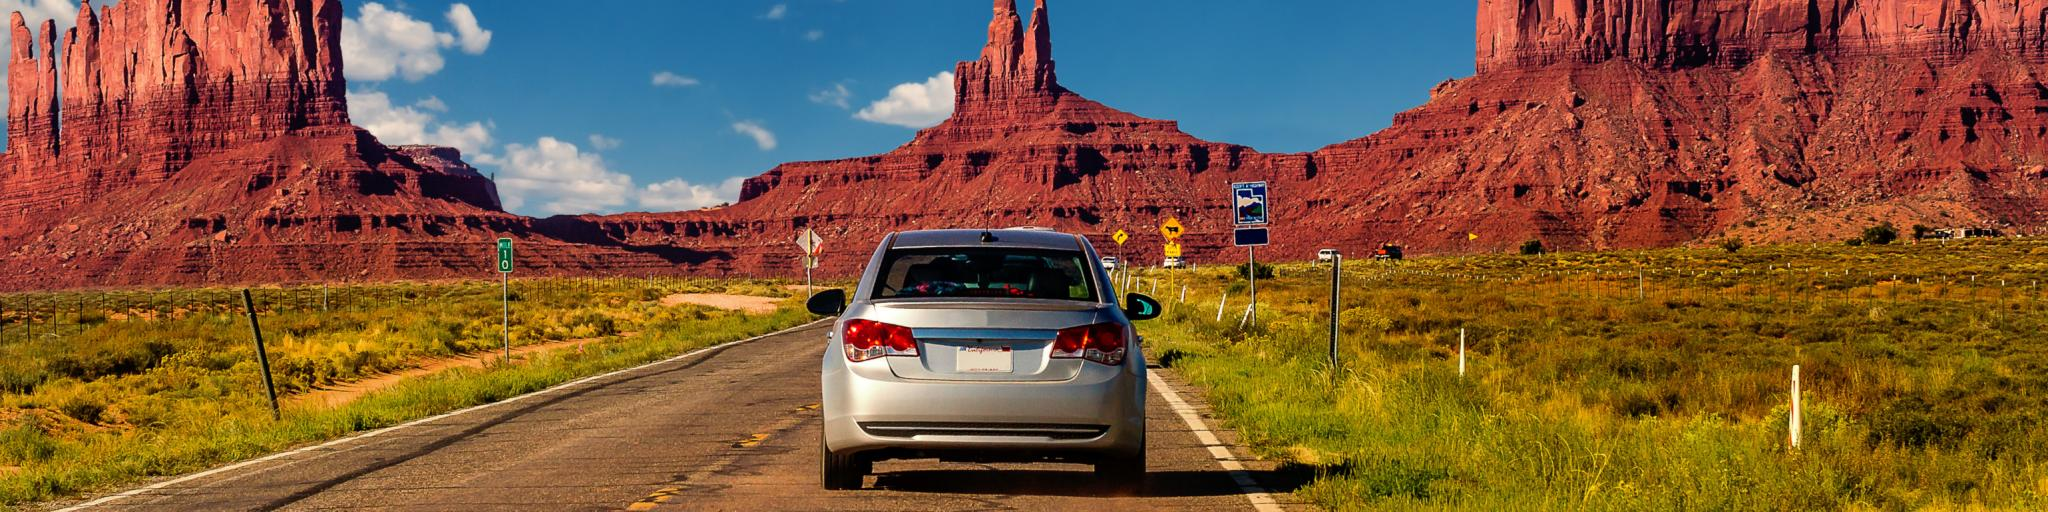 How Much It Really Costs To Rent A Car Lazytrips